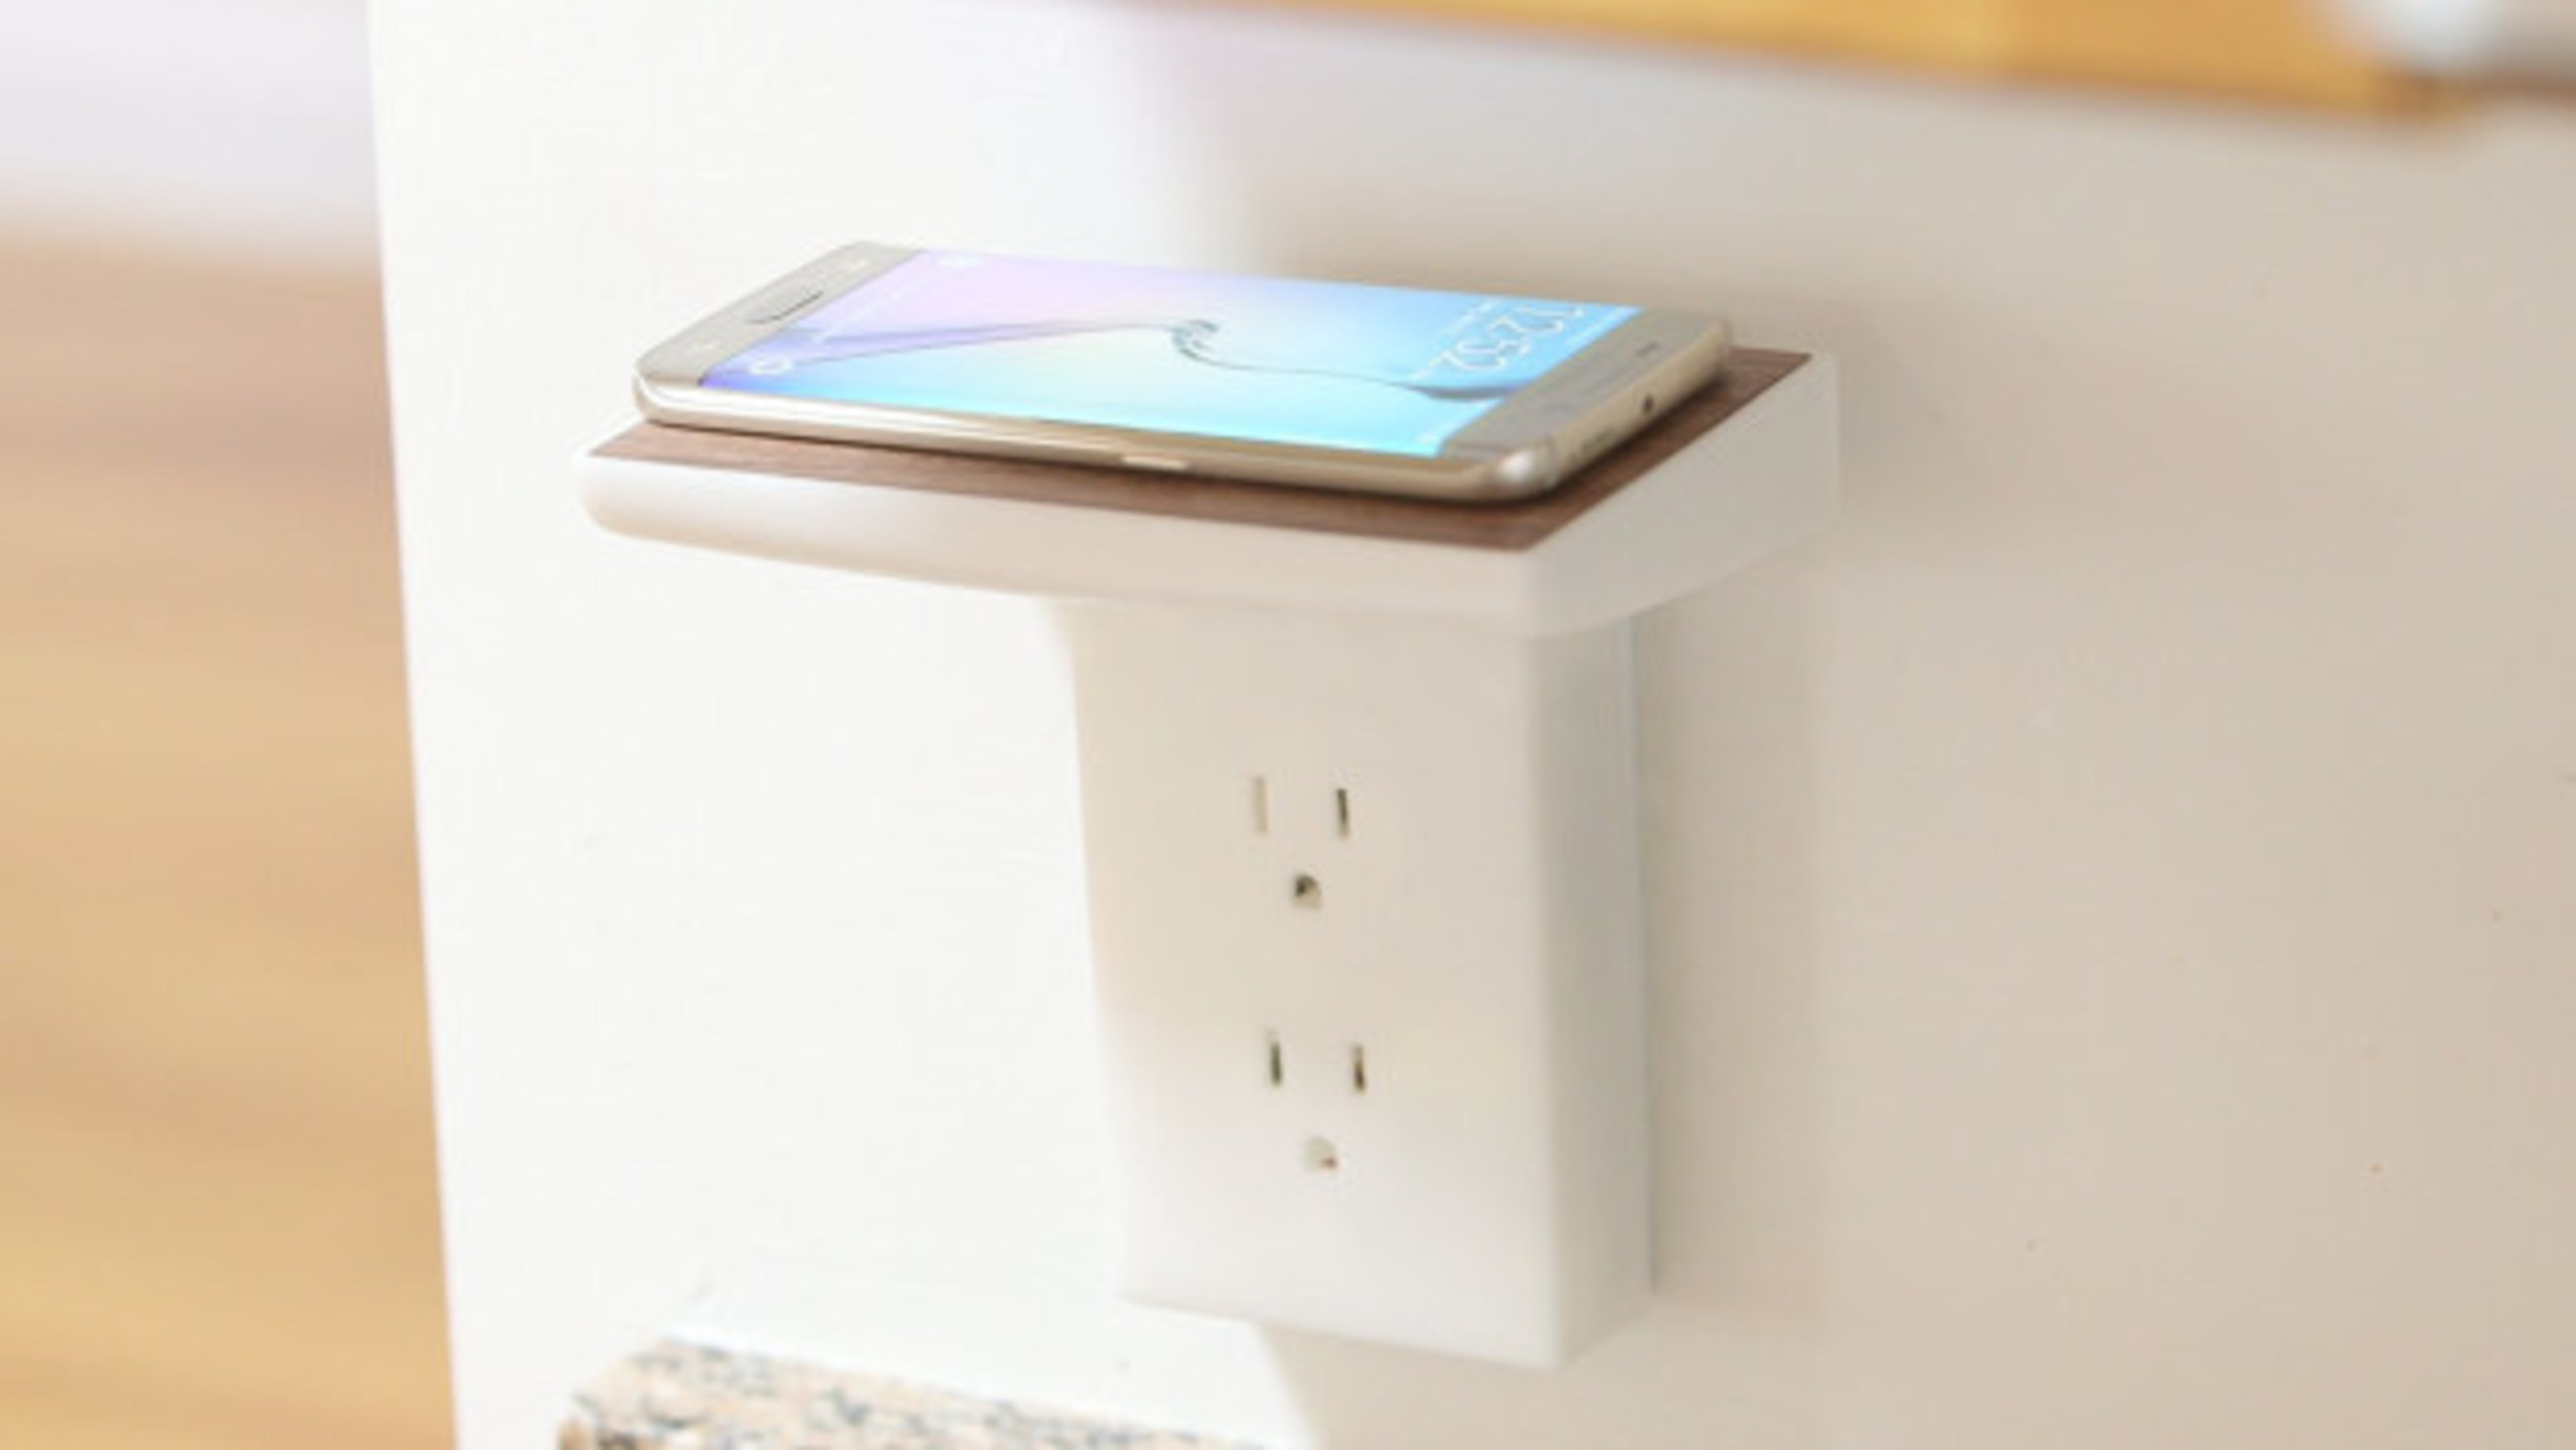 WallJax, the Completely Wireless Phone Charger that Makes the Home Elegant and Tech-Savvy, Ending Soon on Indiegogo